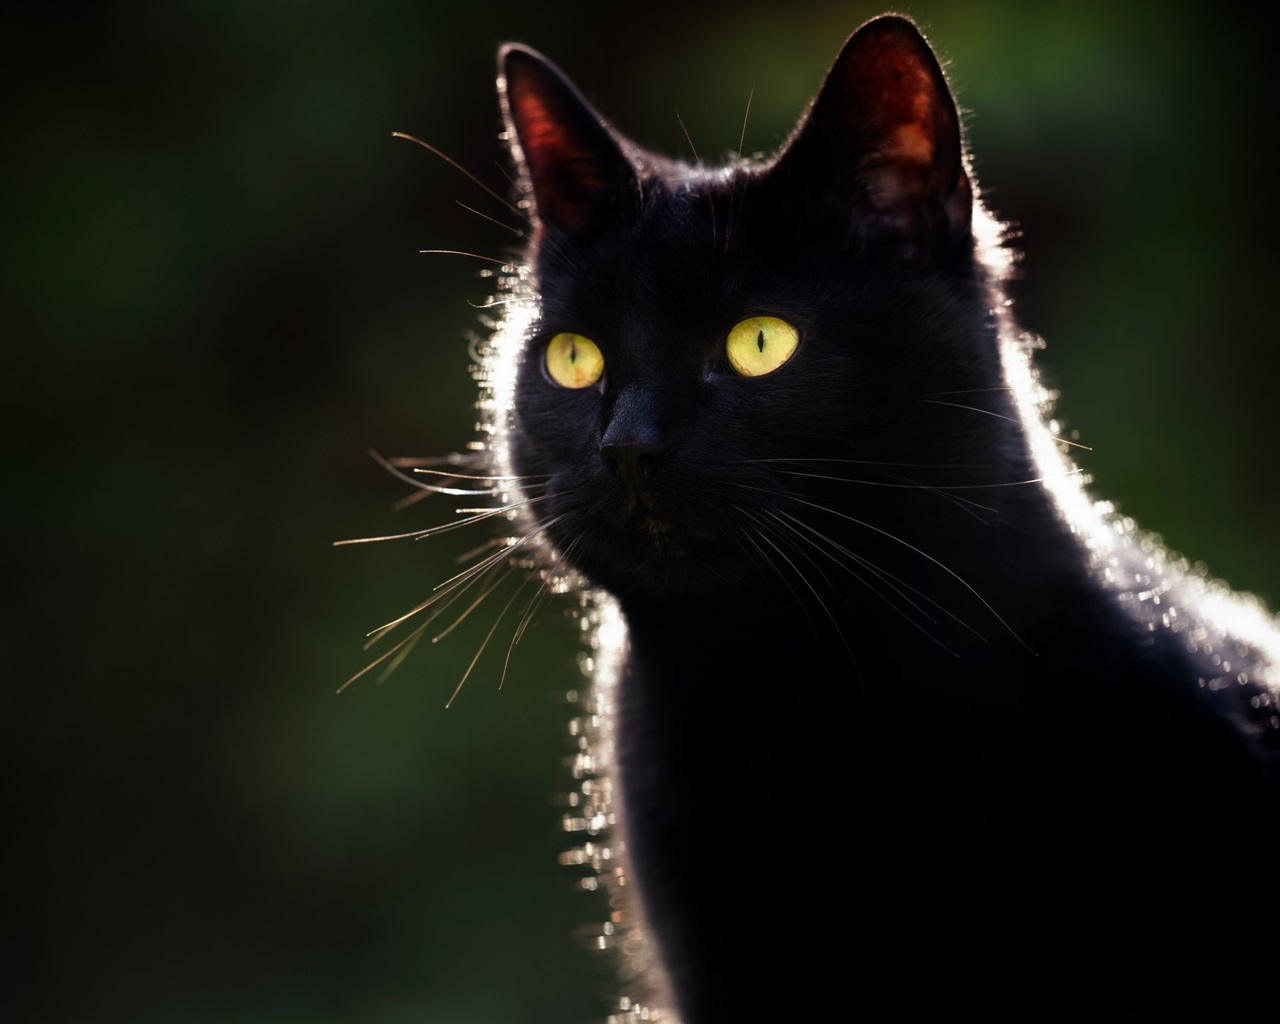 Black Cat Yellow Eyes Backlight Dark Background 640x1136 Iphone 5 5s 5c Se Wallpaper Background Picture Image